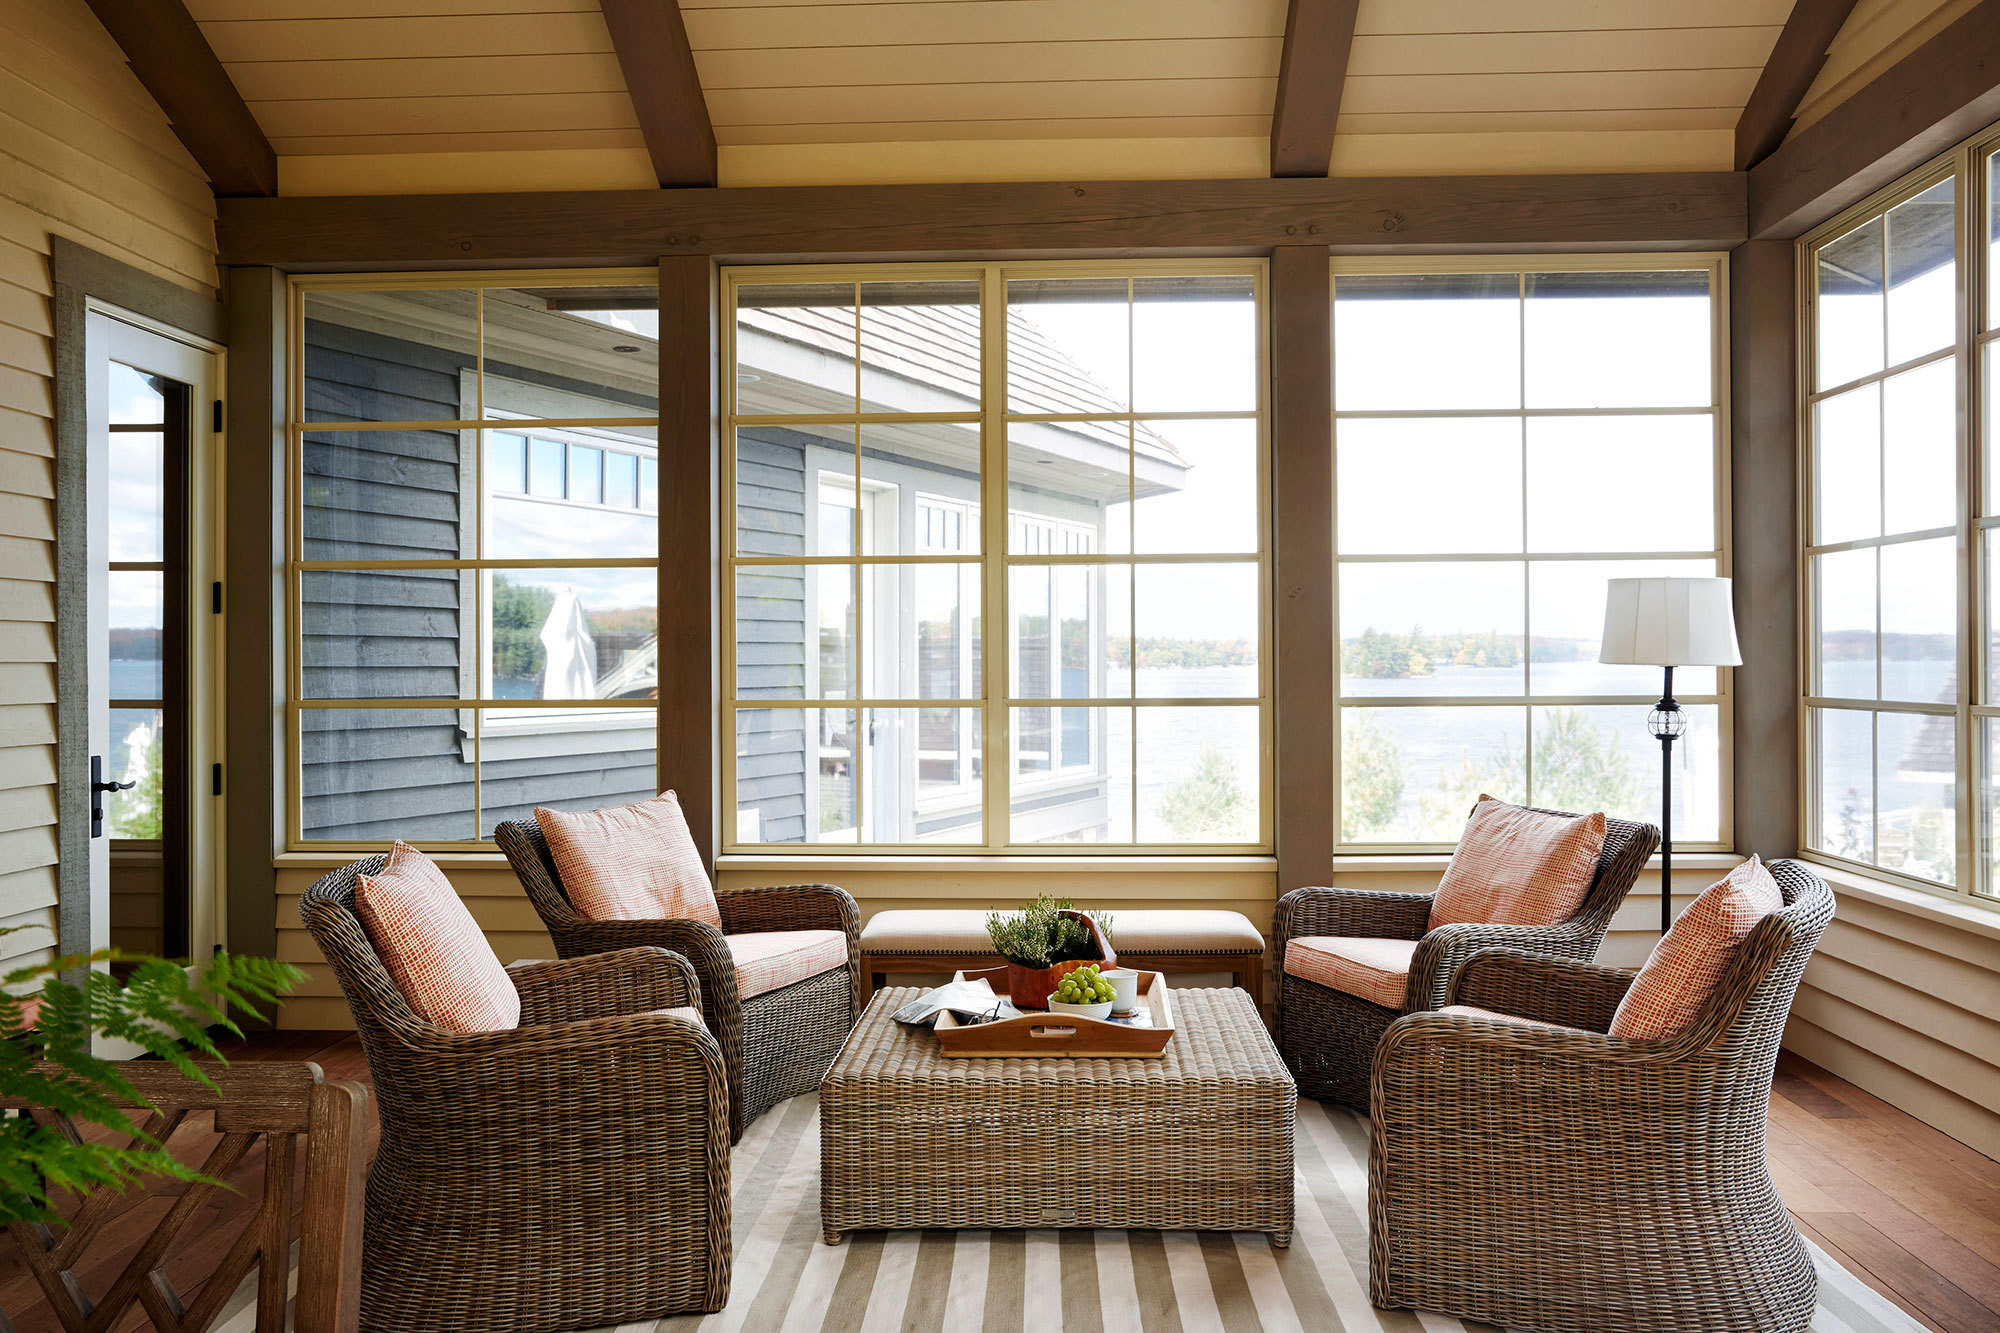 In the three-season Muskoka Room, ipe decking and furniture in handwoven wicker make for an indoor-outdoor atmosphere.